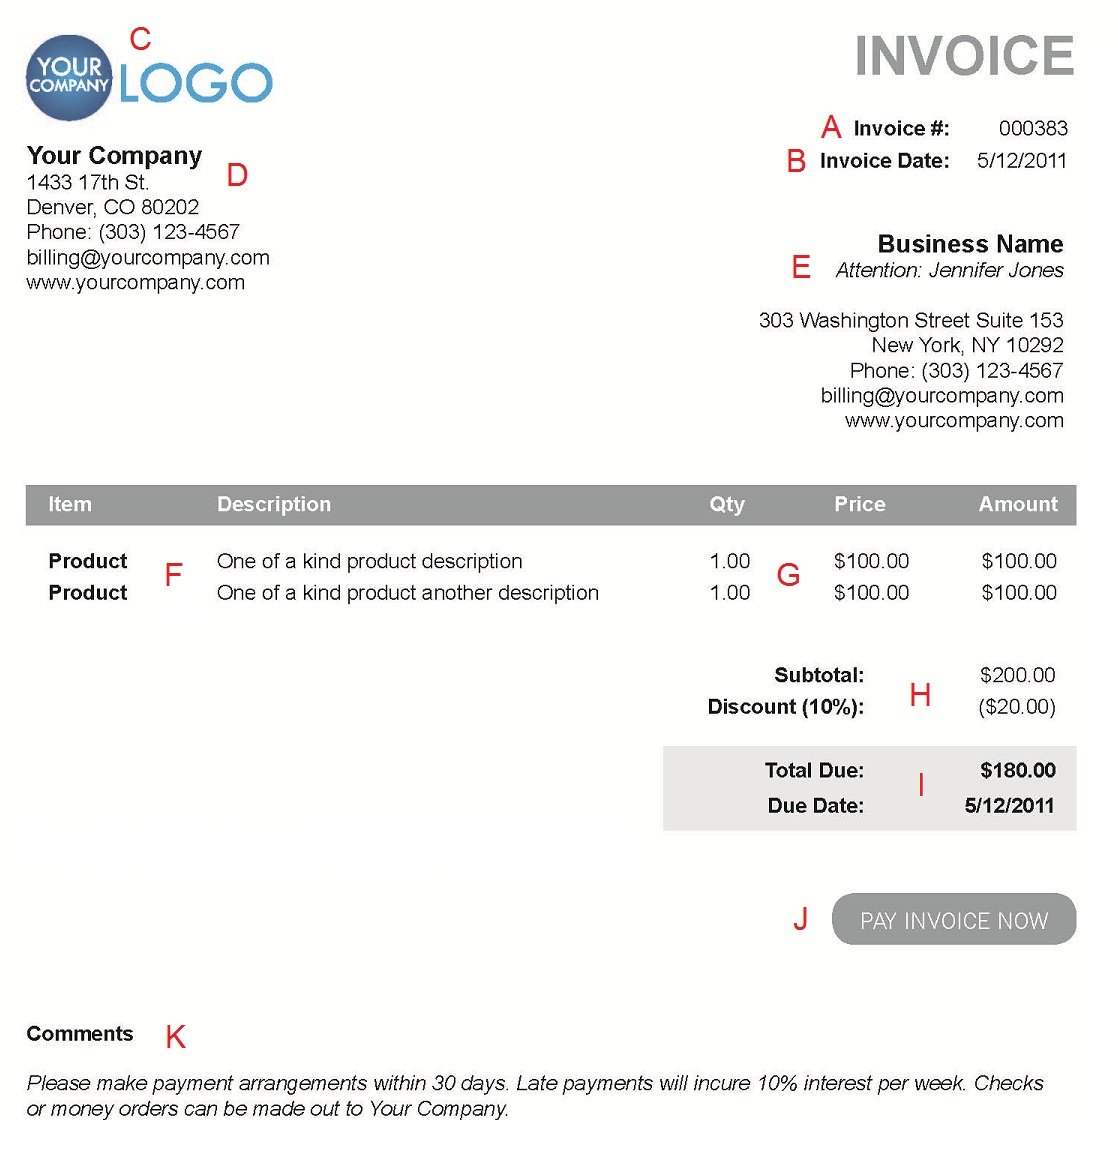 Centralasianshepherdus  Pretty The  Different Sections Of An Electronic Payment Invoice With Fascinating A  With Lovely Invoice Draft Also Invoice App For Mac In Addition Car Invoice Prices By Vin And Invoice Po As Well As International Invoice Additionally Blank Service Invoice Template From Paysimplecom With Centralasianshepherdus  Fascinating The  Different Sections Of An Electronic Payment Invoice With Lovely A  And Pretty Invoice Draft Also Invoice App For Mac In Addition Car Invoice Prices By Vin From Paysimplecom